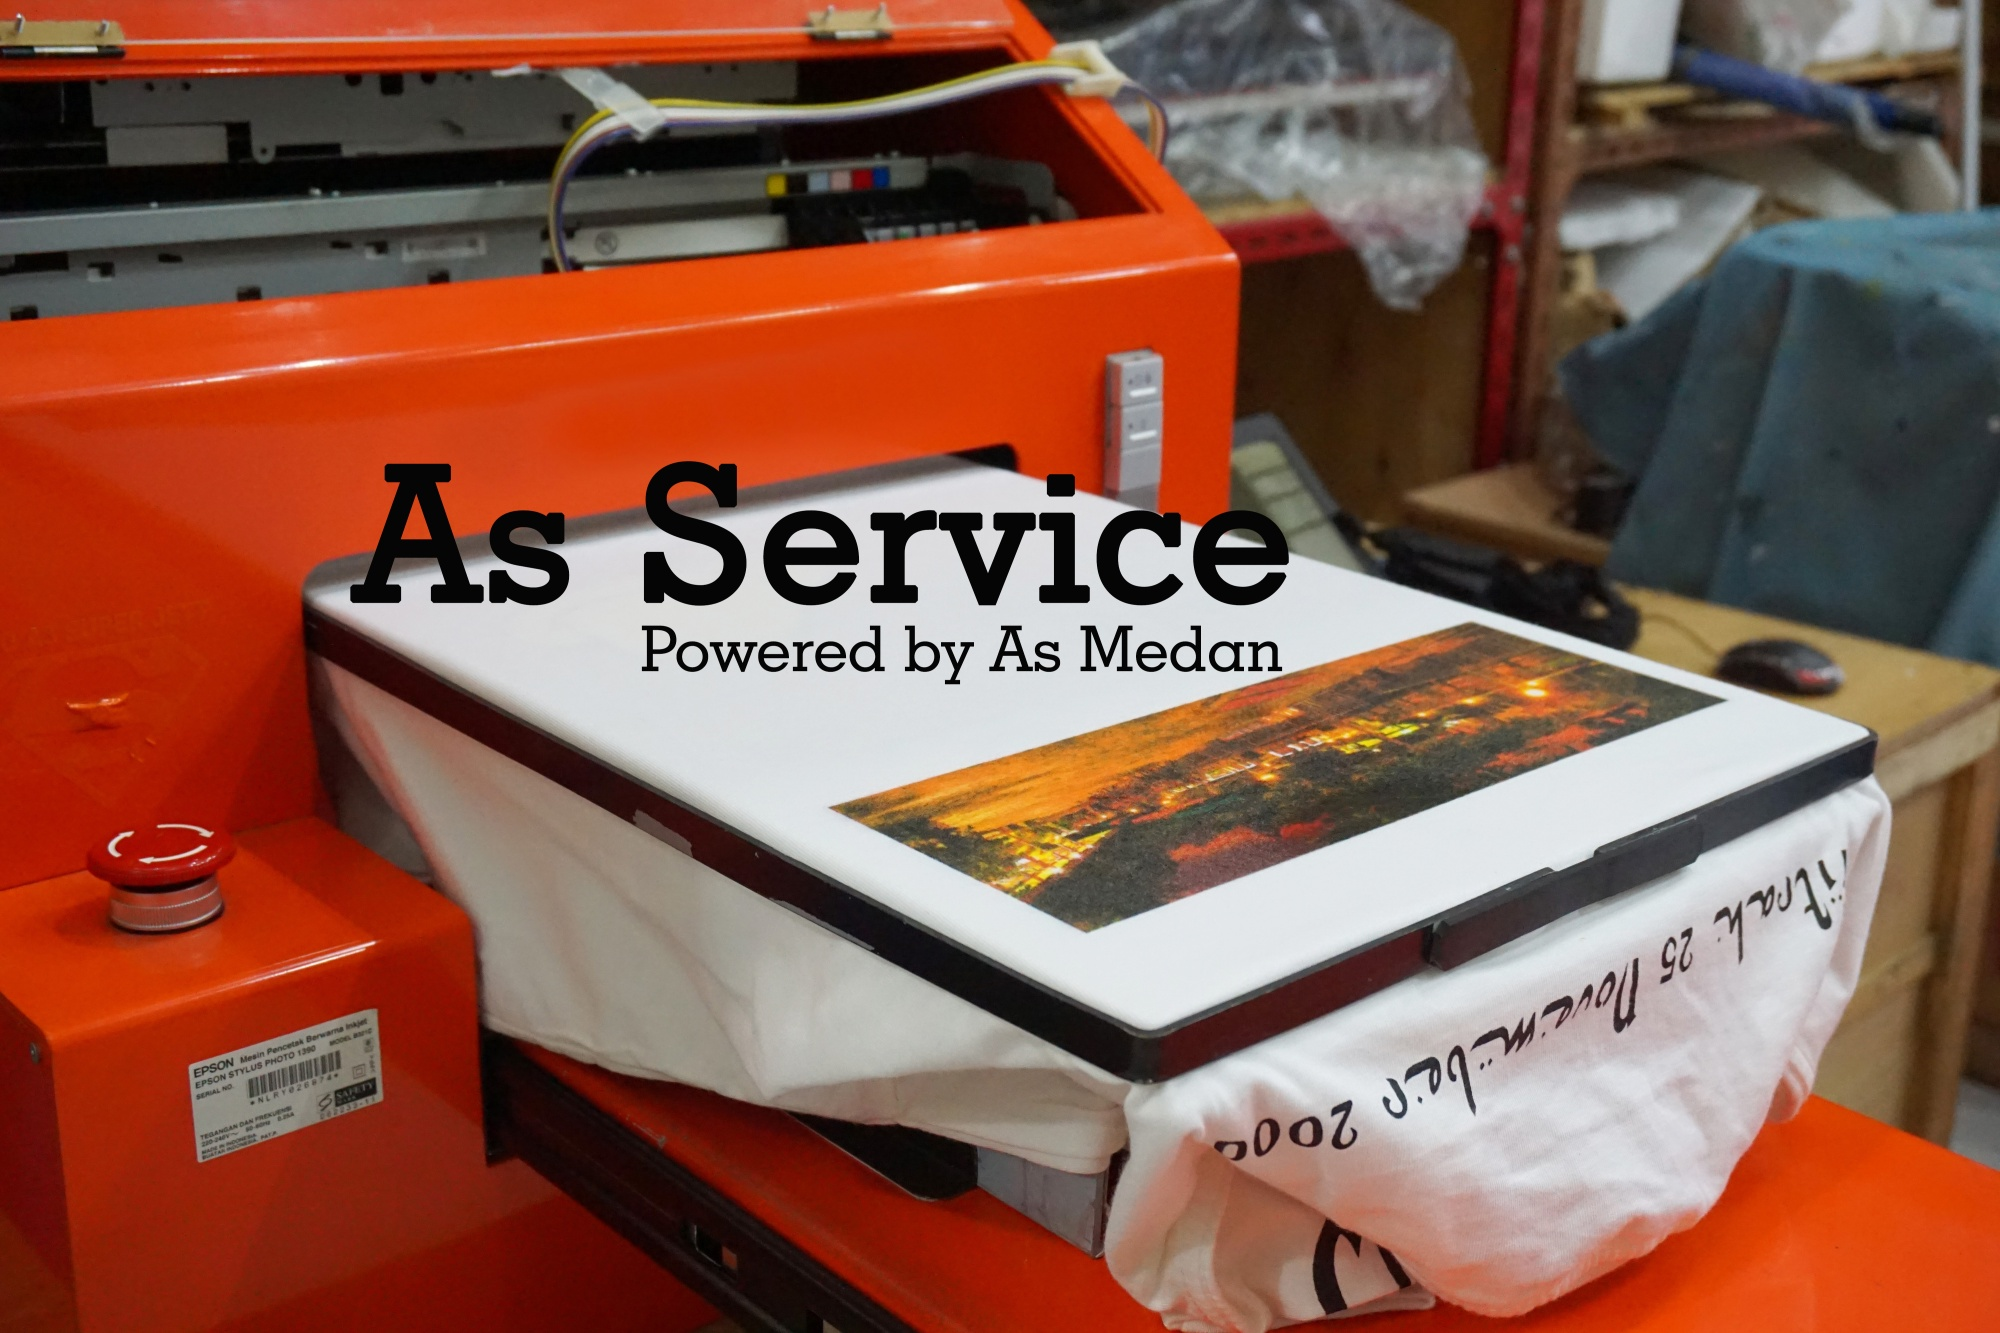 As Service Pusat service mesin printer DTG